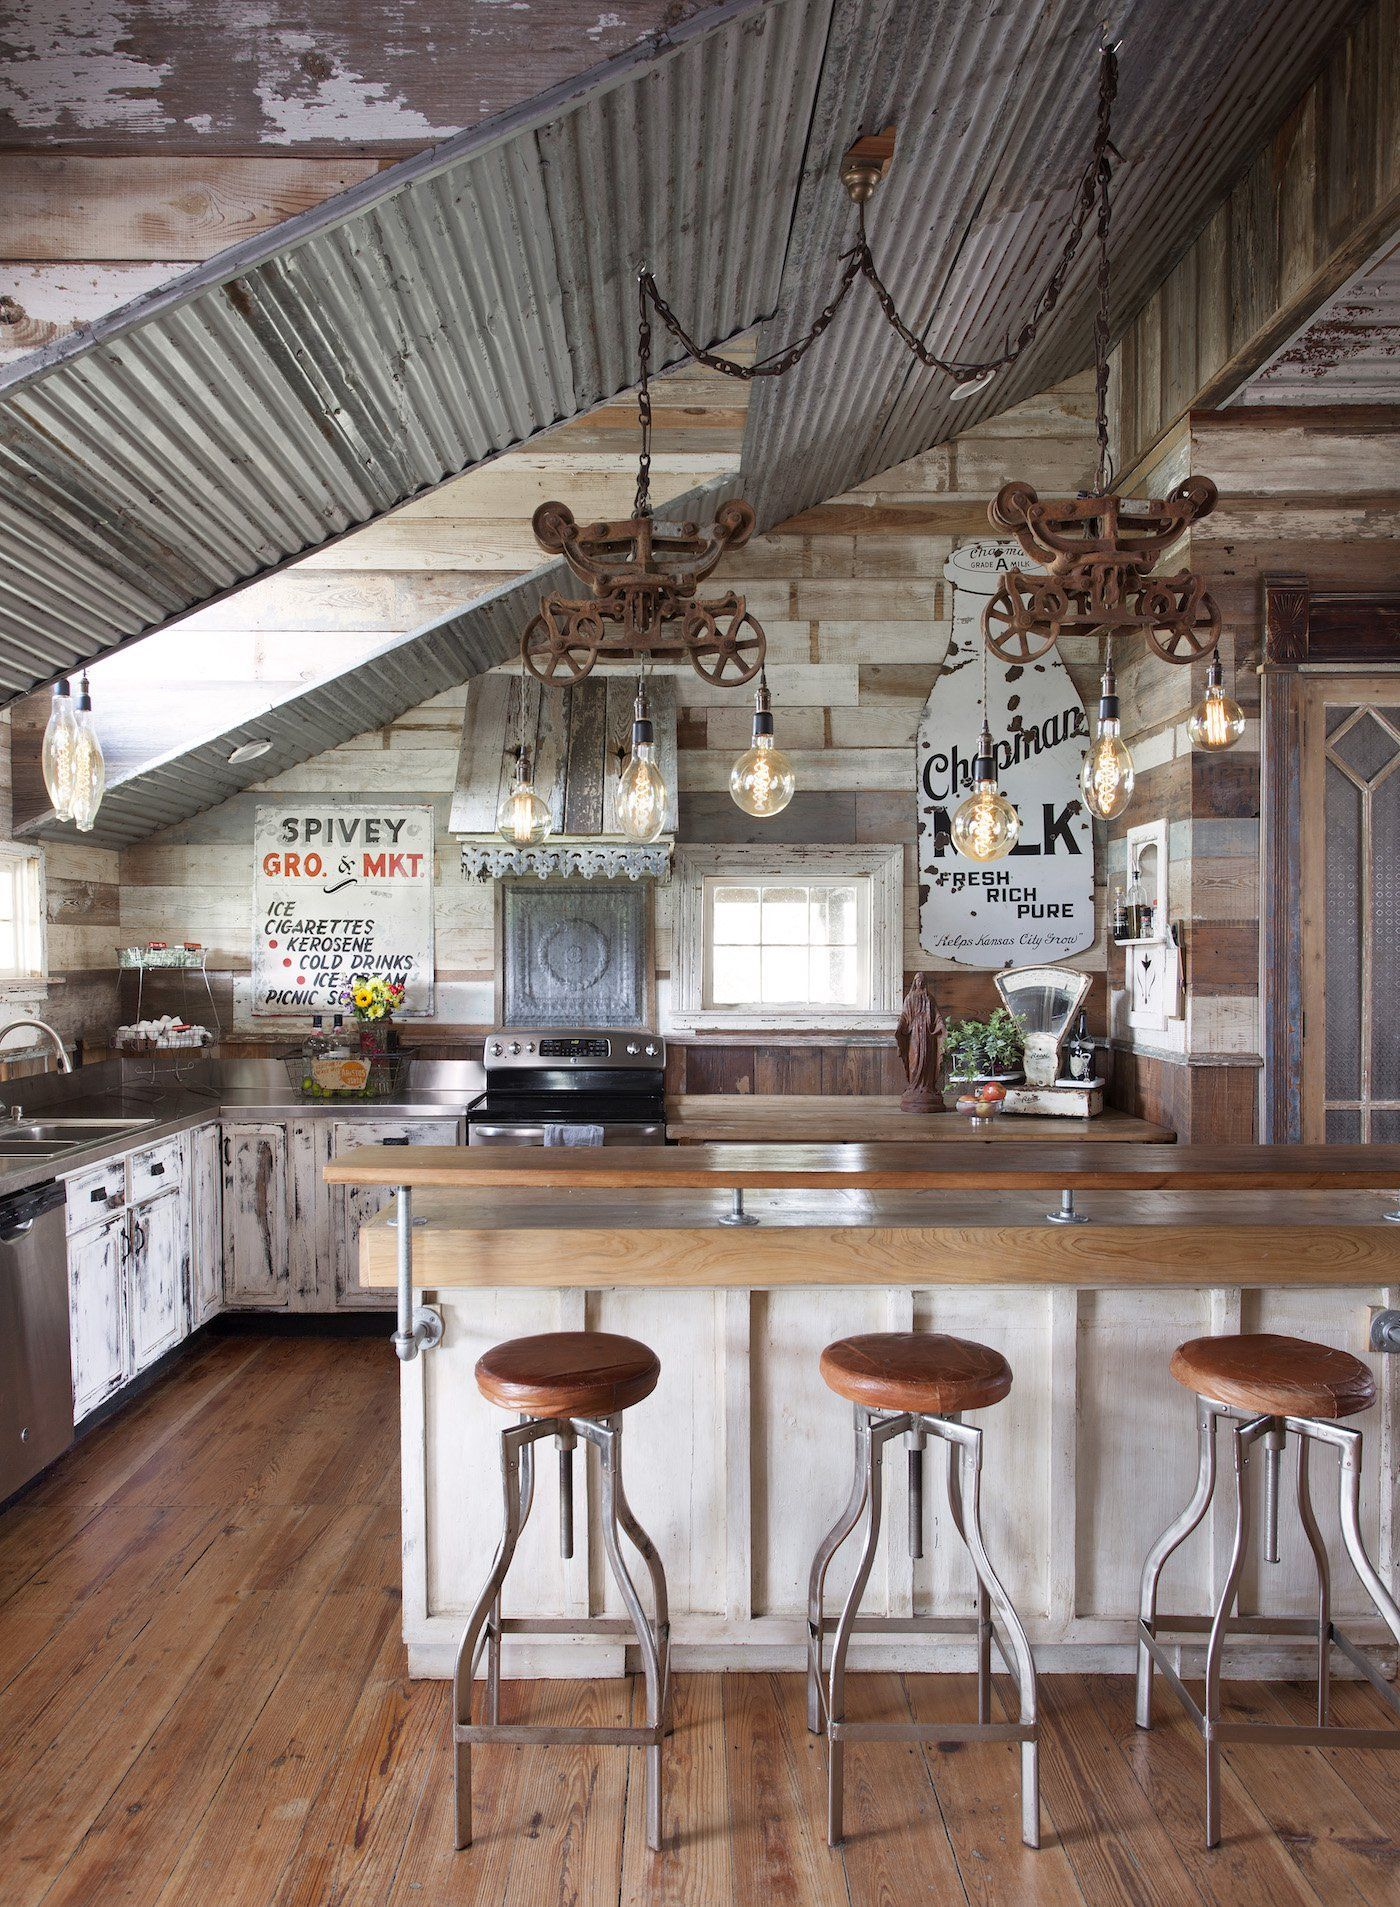 Look inside an antique dealerus dream home in round top kitchen